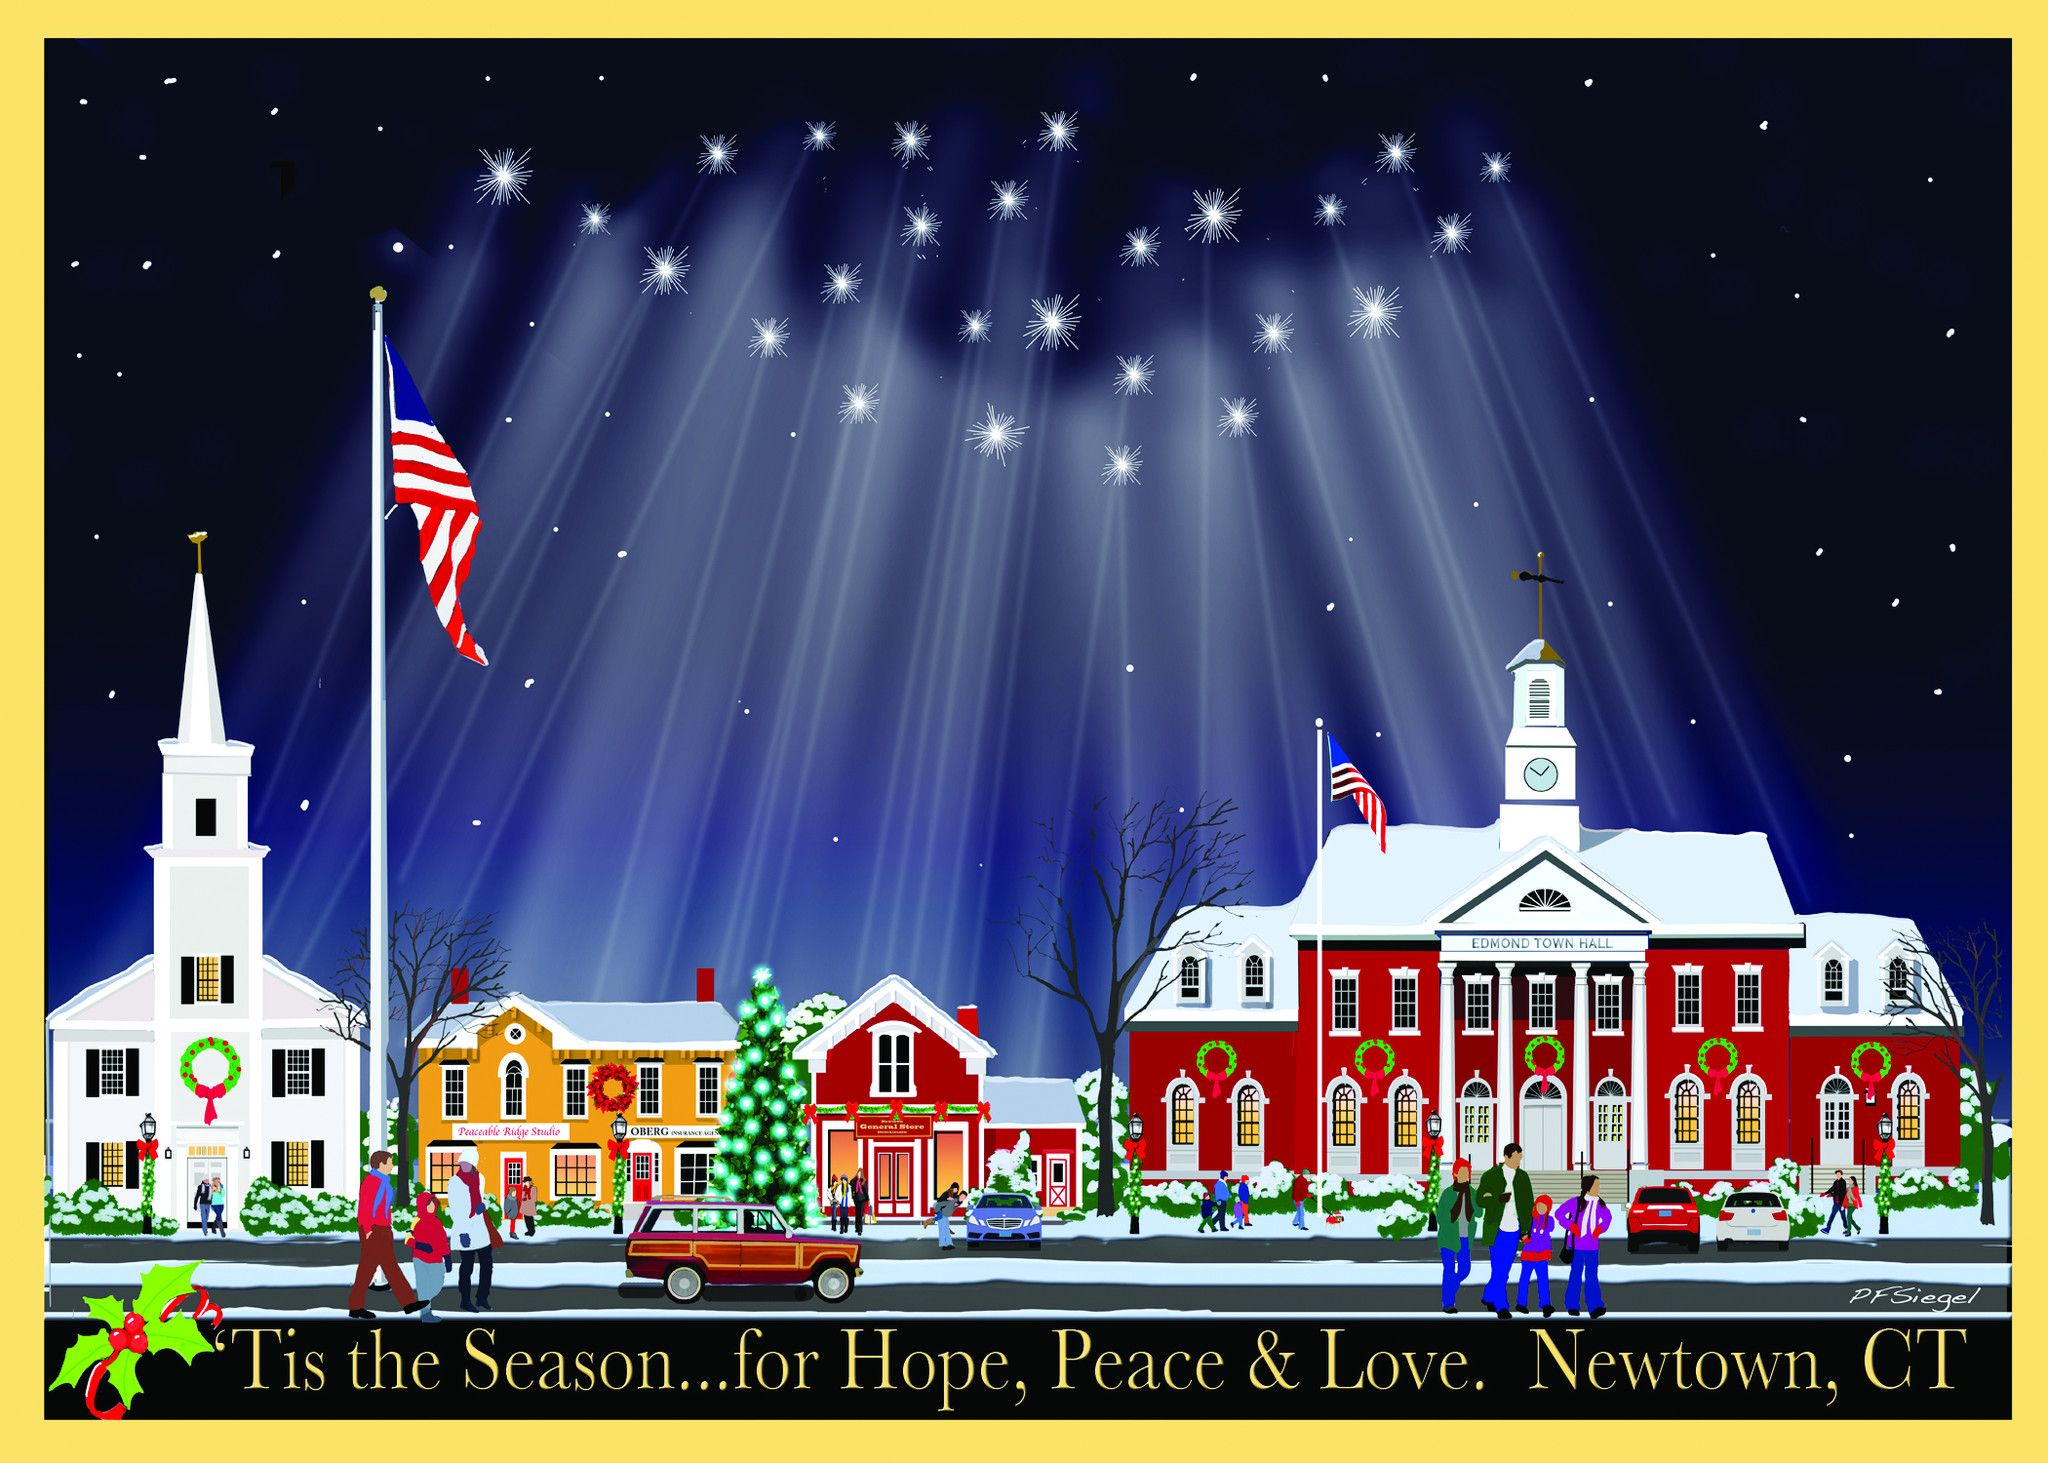 """'Tis the Season to Remember' Newtown Main Street Holiday Card. 5""""x7"""" cards in boxed set of 10 with envelopes. Artist: Paul Siegel. $15.00"""